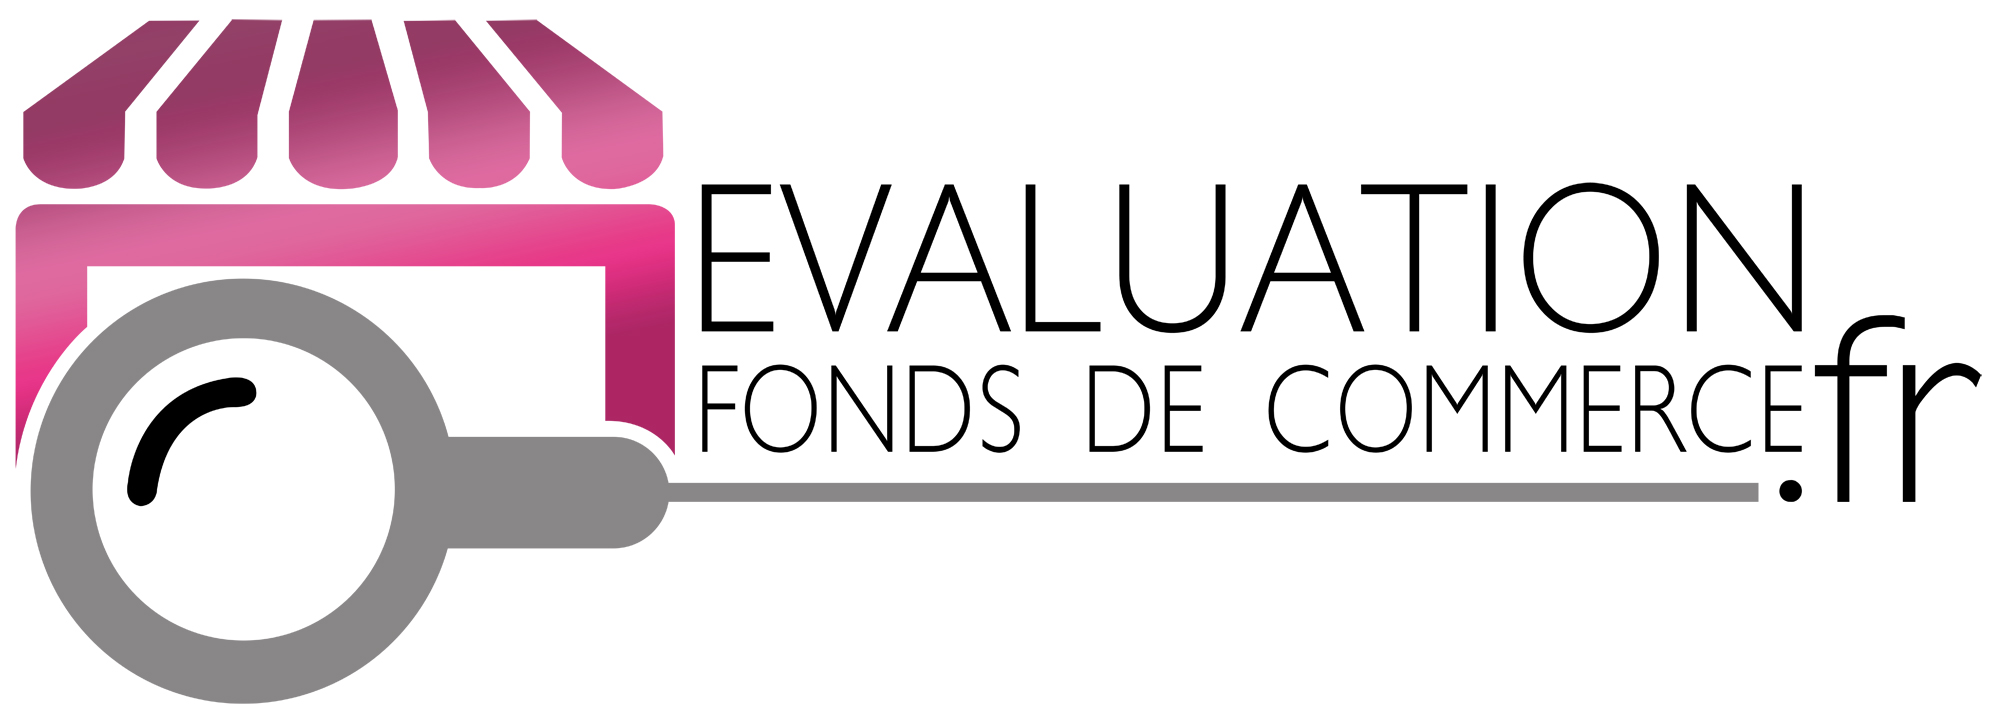 www.evaluation-fonds-de-commerce.fr